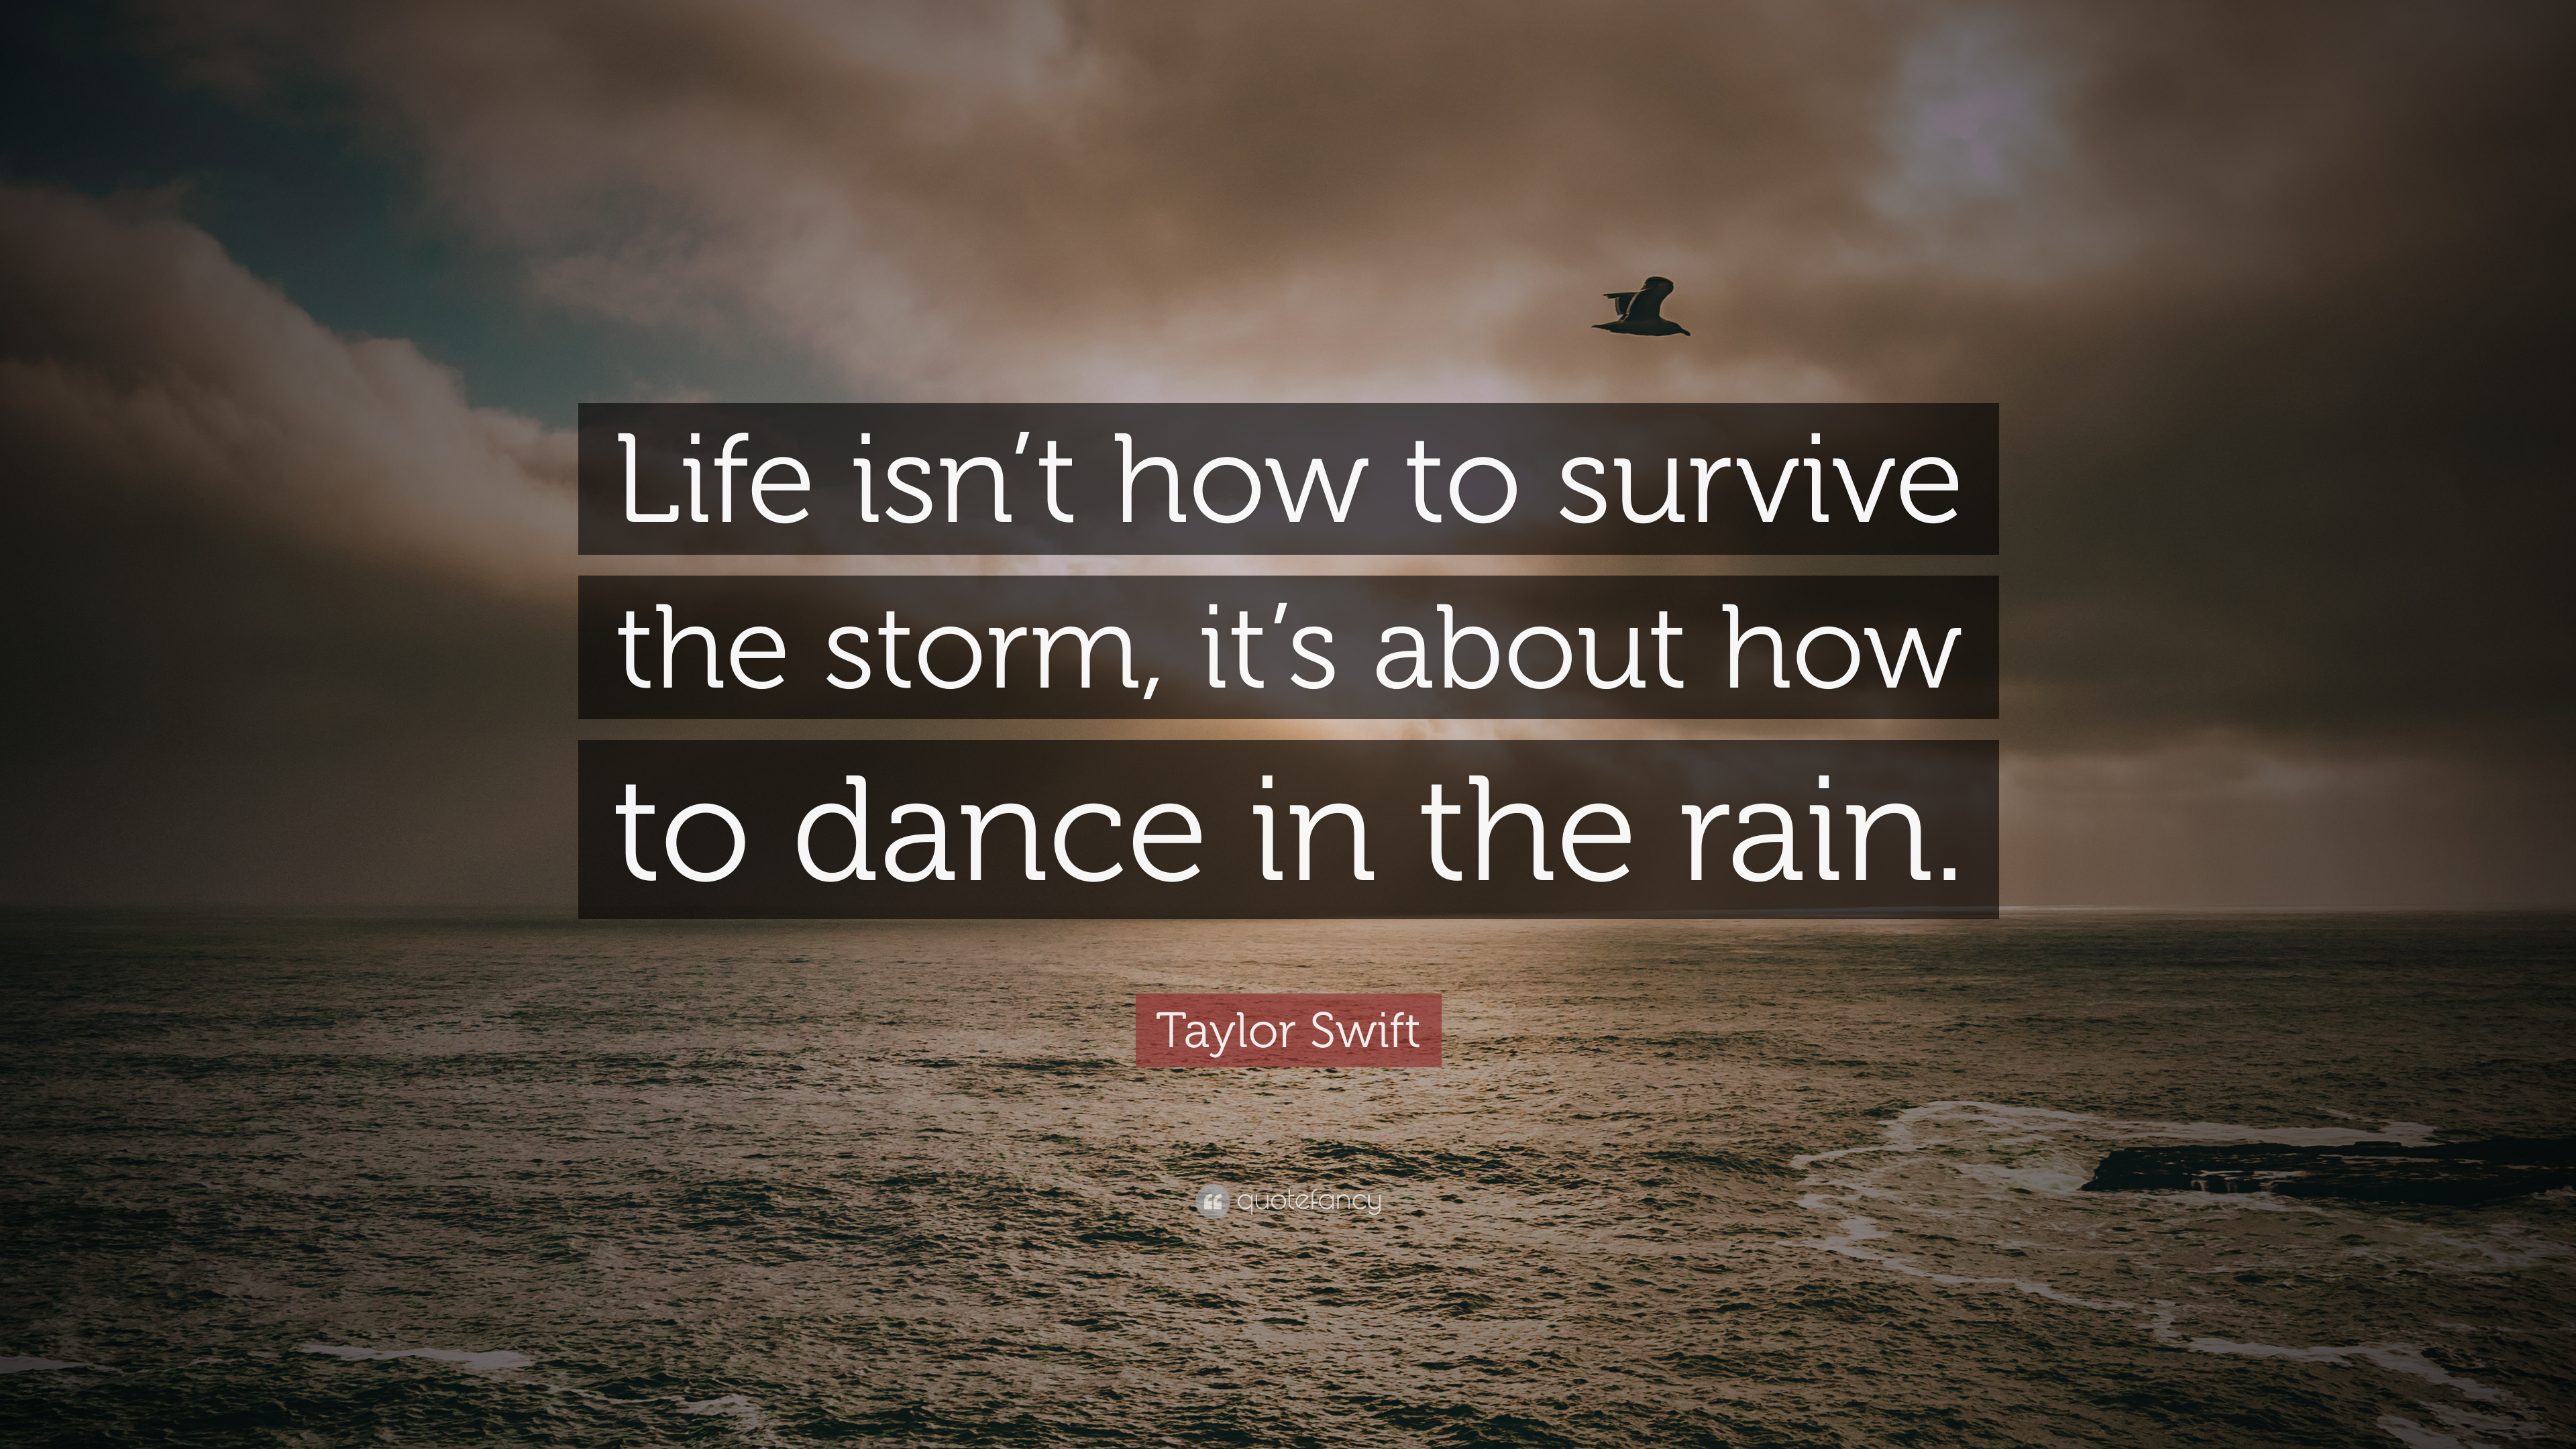 Taylor Swift Quote Life Isnt How To Survive The Storm Its About